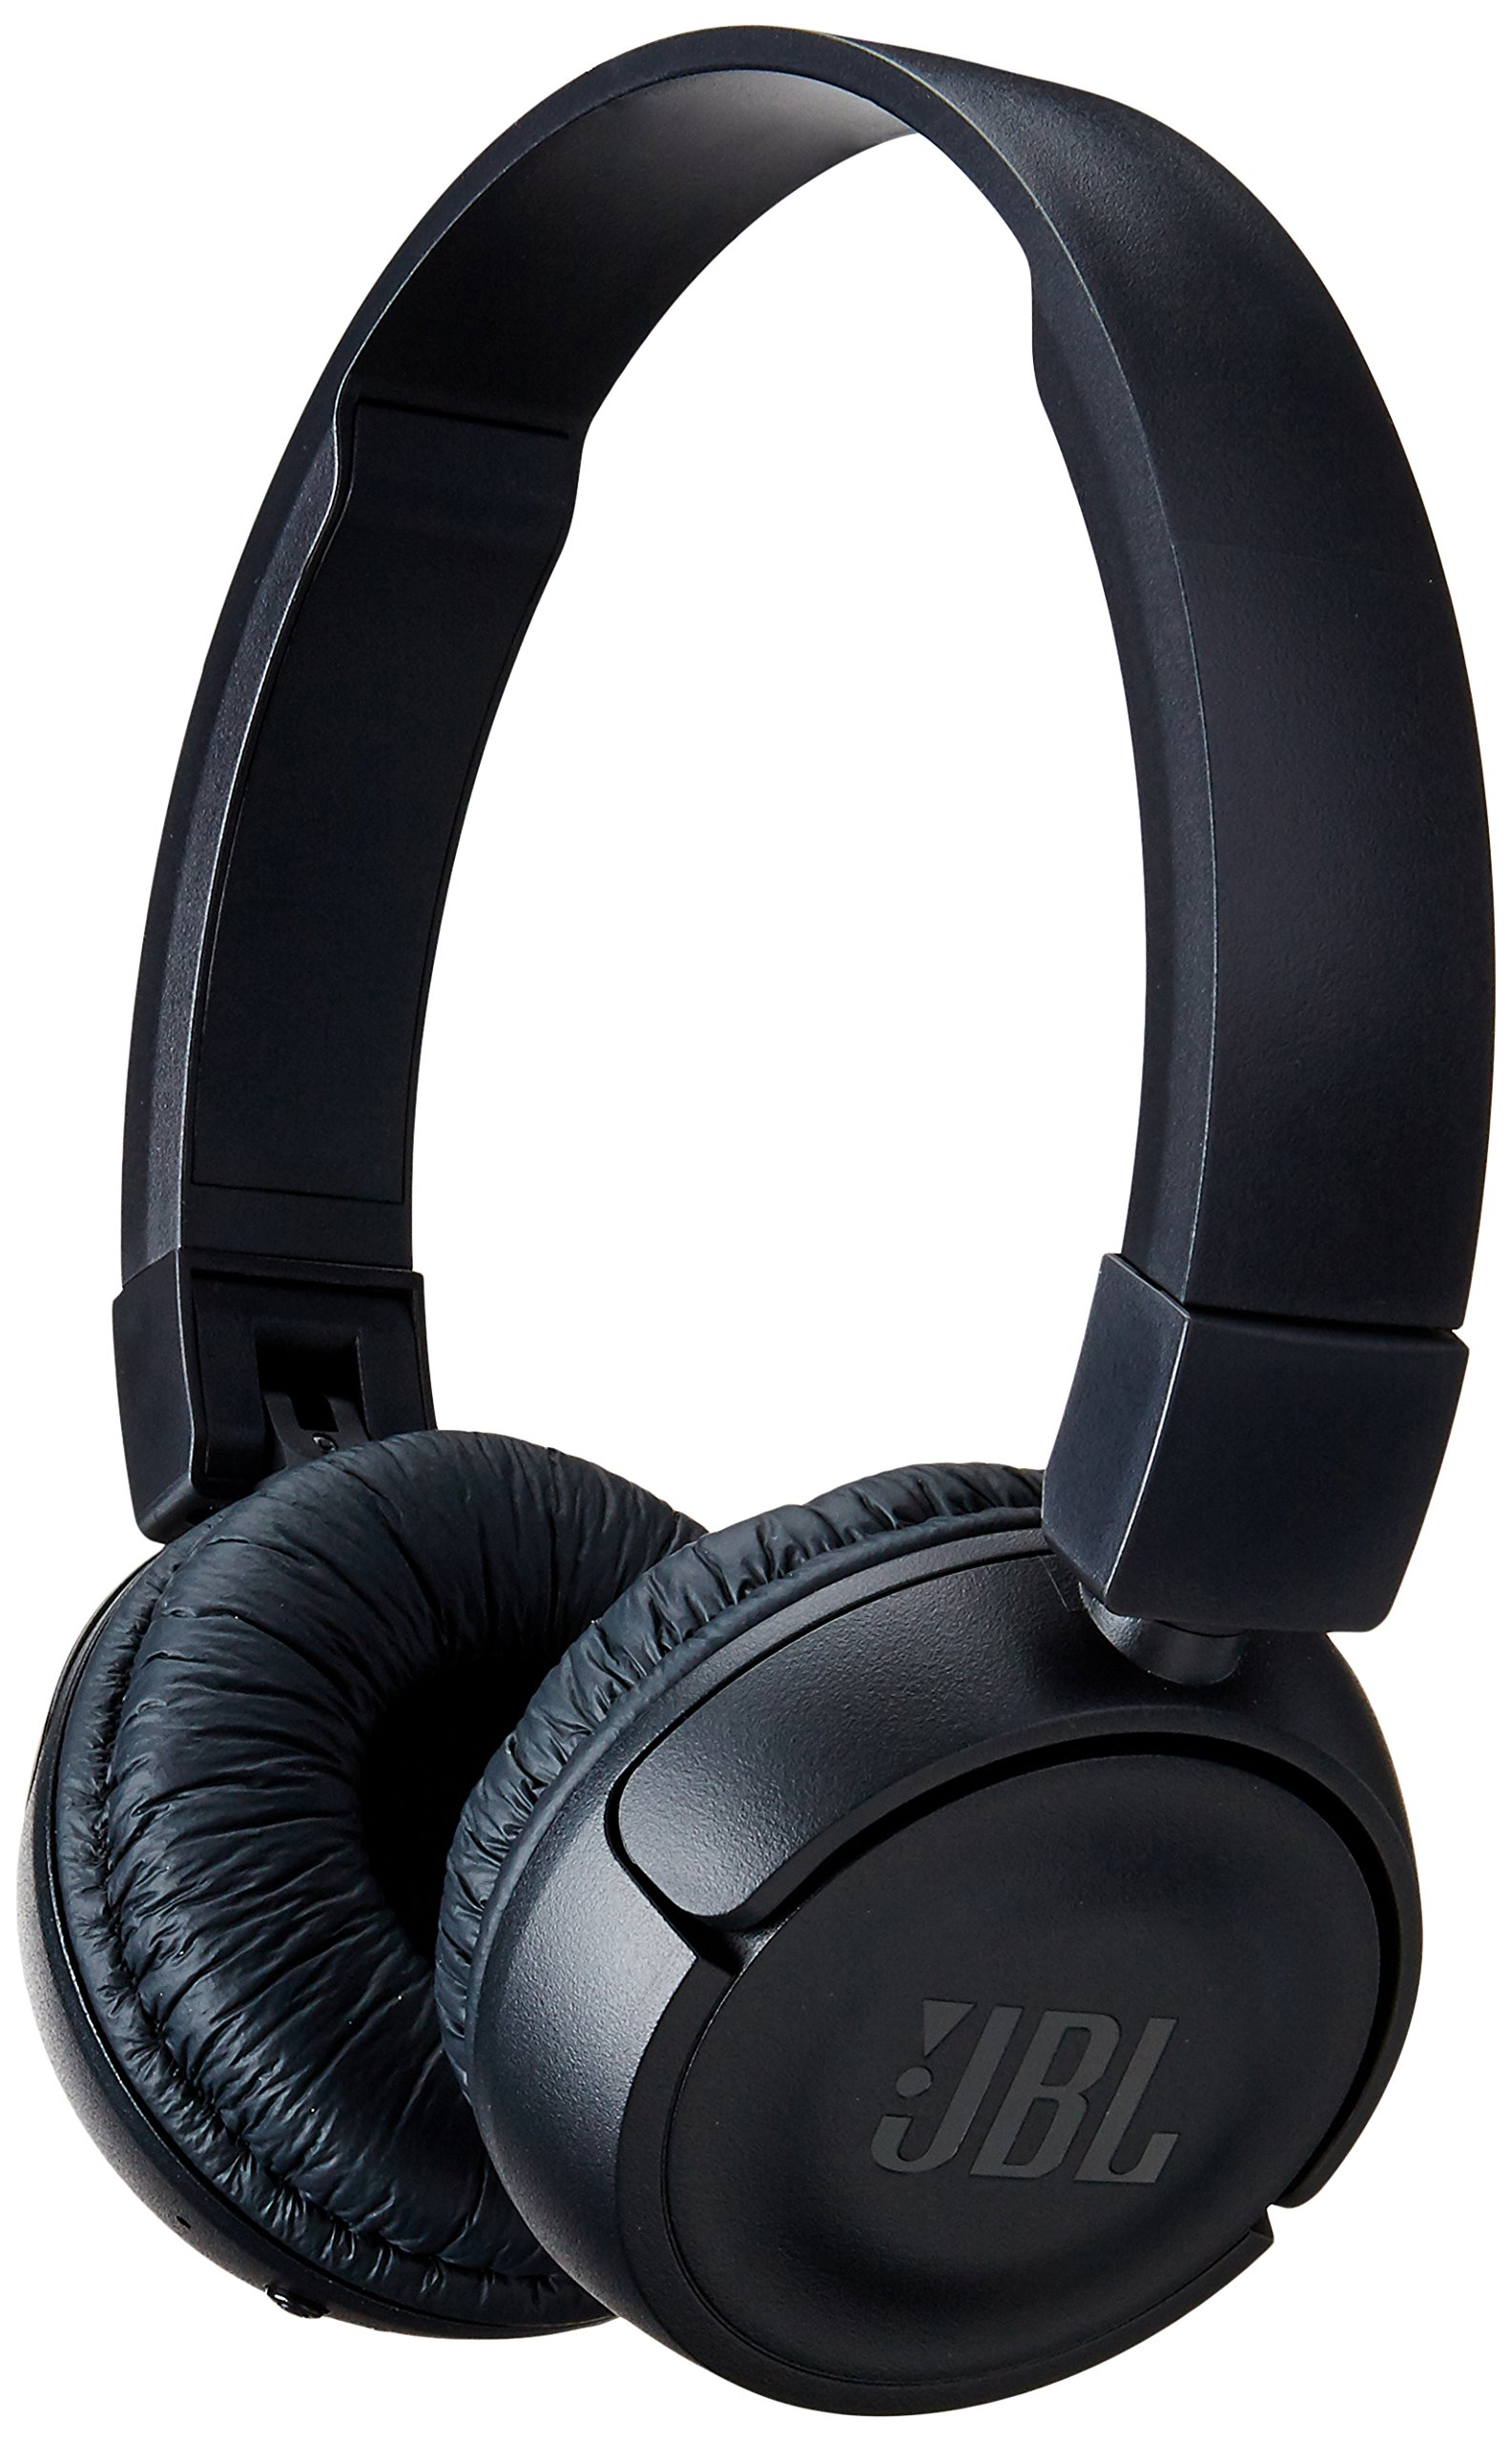 Amazon Com Jbl T450bt Wireless On Ear Headphones With Built In Remote And Microphone Black Electronics